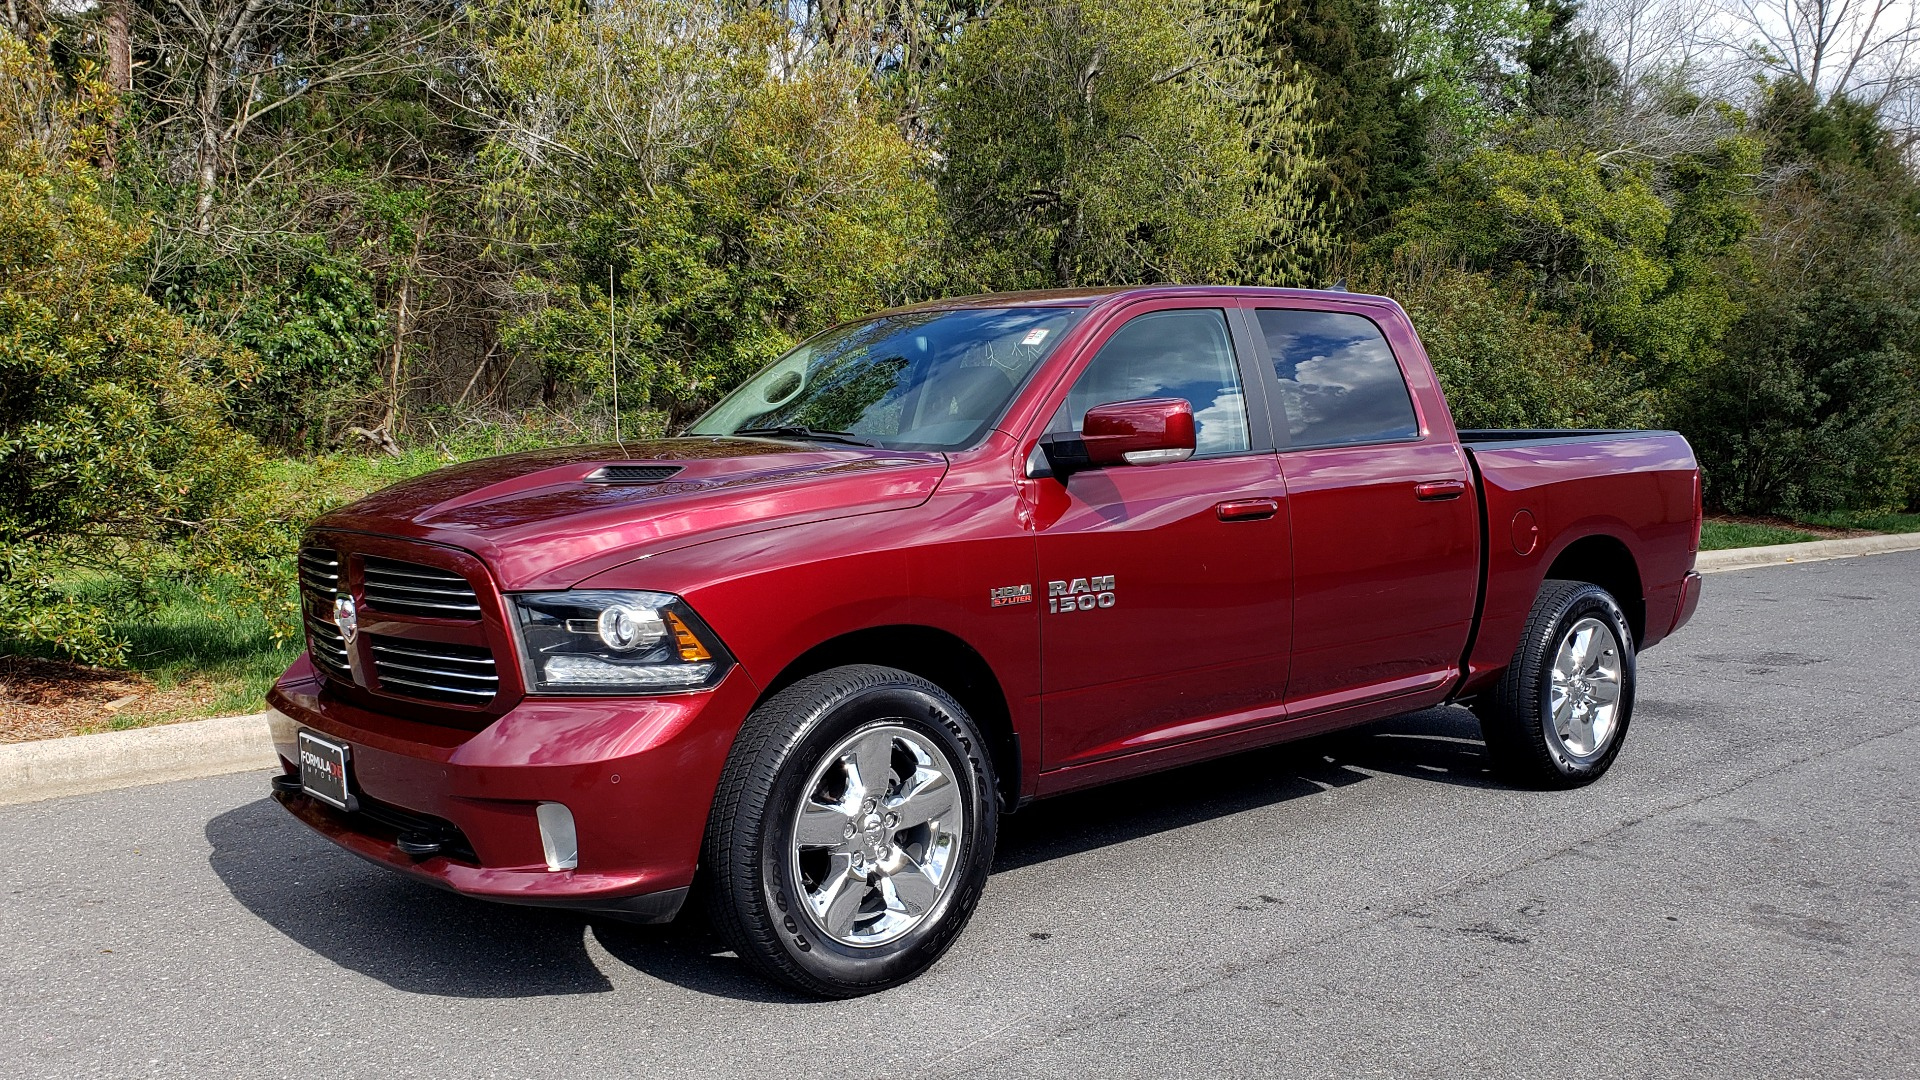 Used 2017 Ram 1500 SPORT CREW CAB 4X4 / NAV / ALPINE / SUNROOF / VENT STS / REARVIEW for sale Sold at Formula Imports in Charlotte NC 28227 1